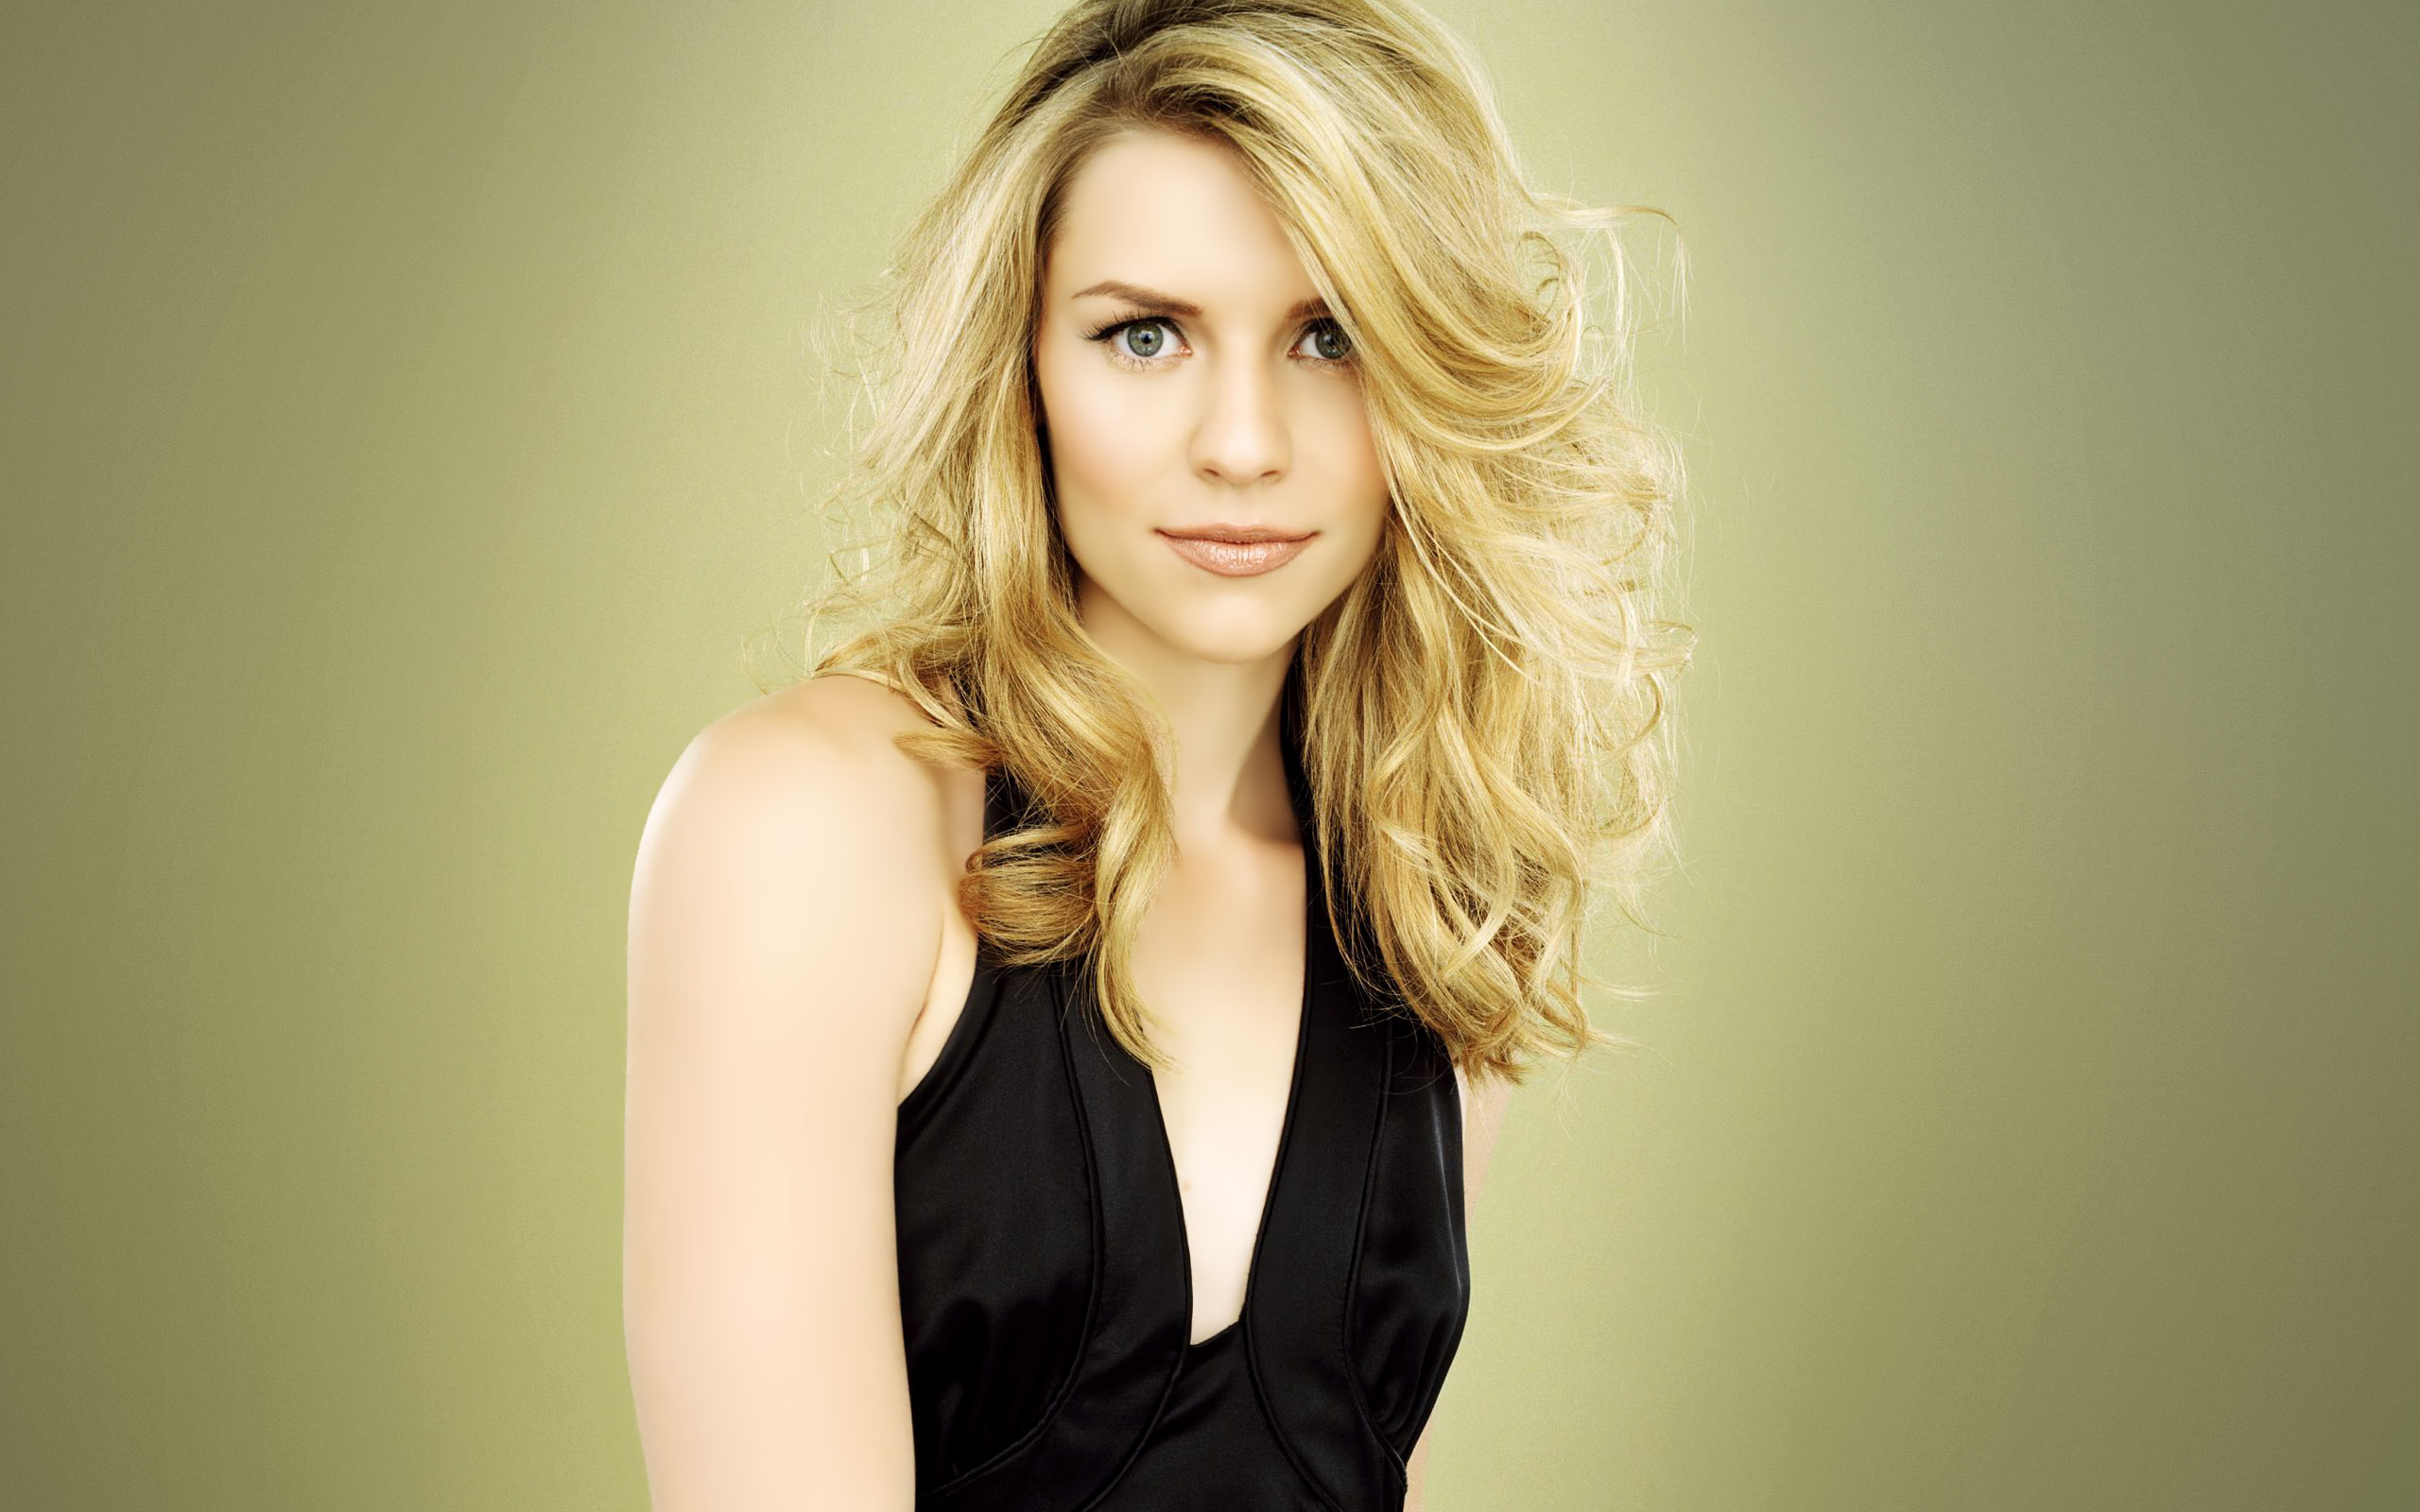 2560x1600 - Claire Danes Wallpapers 7